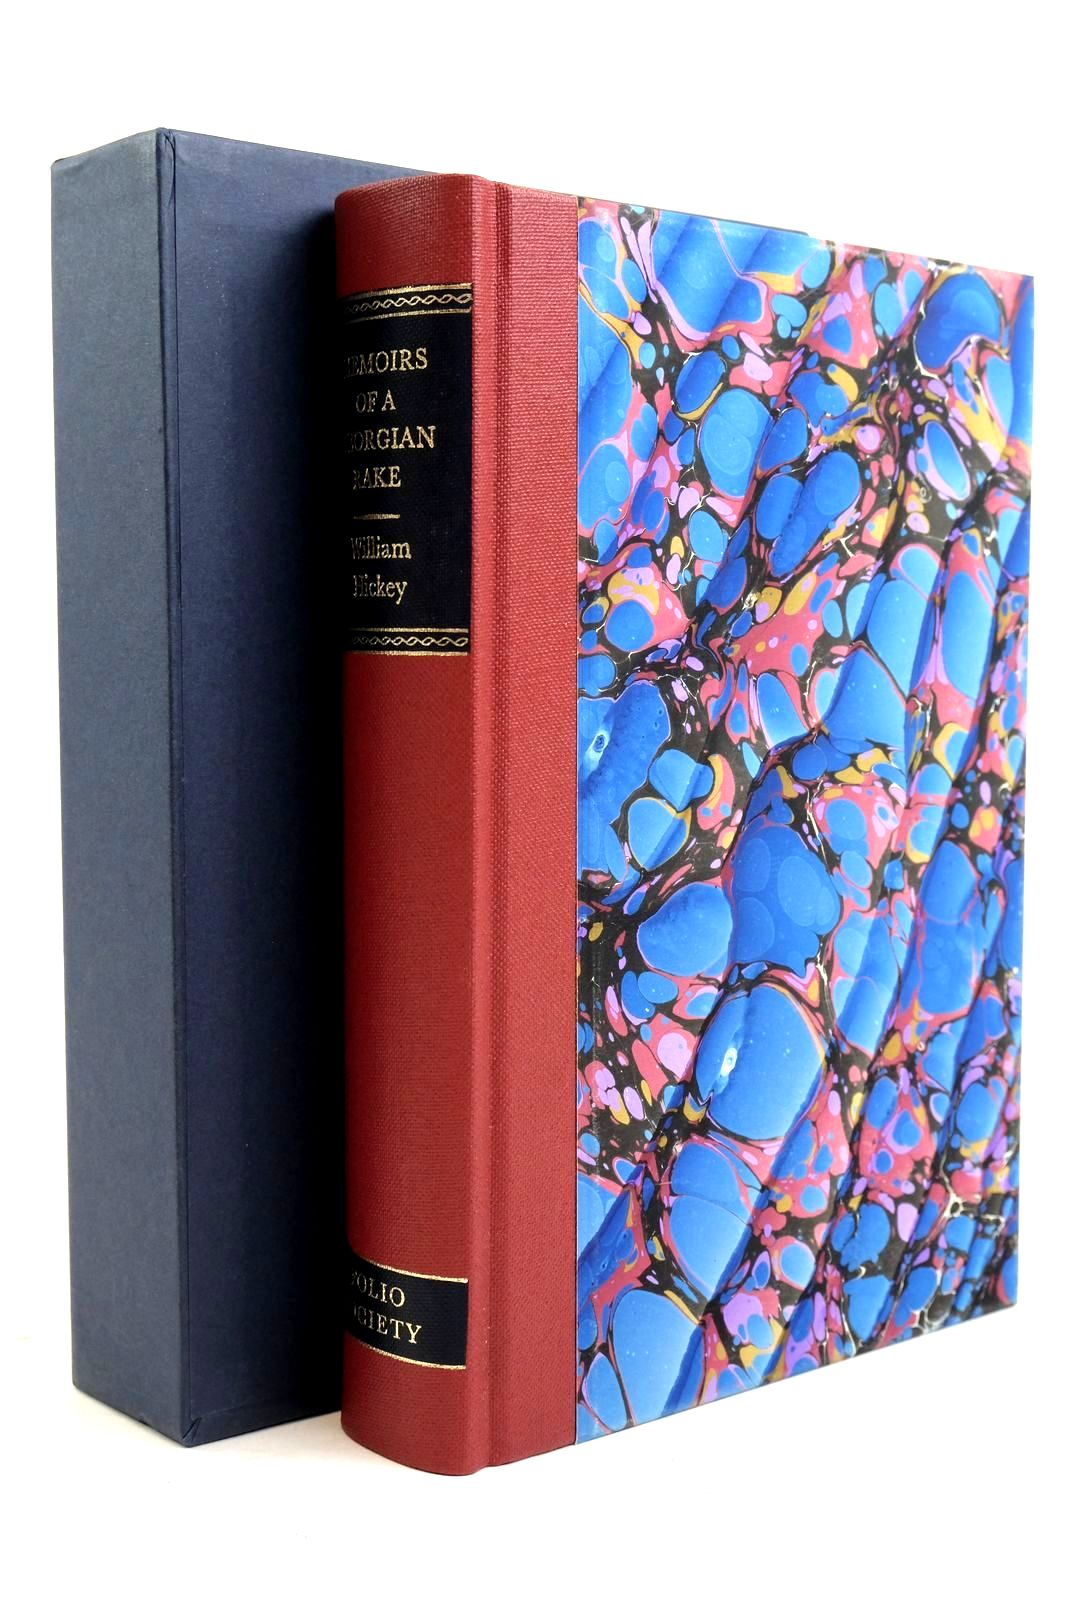 Photo of MEMOIRS OF A GEORGIAN RAKE written by Hickey, William Hudson, Roger illustrated by Lawrence, John published by Folio Society (STOCK CODE: 1320758)  for sale by Stella & Rose's Books